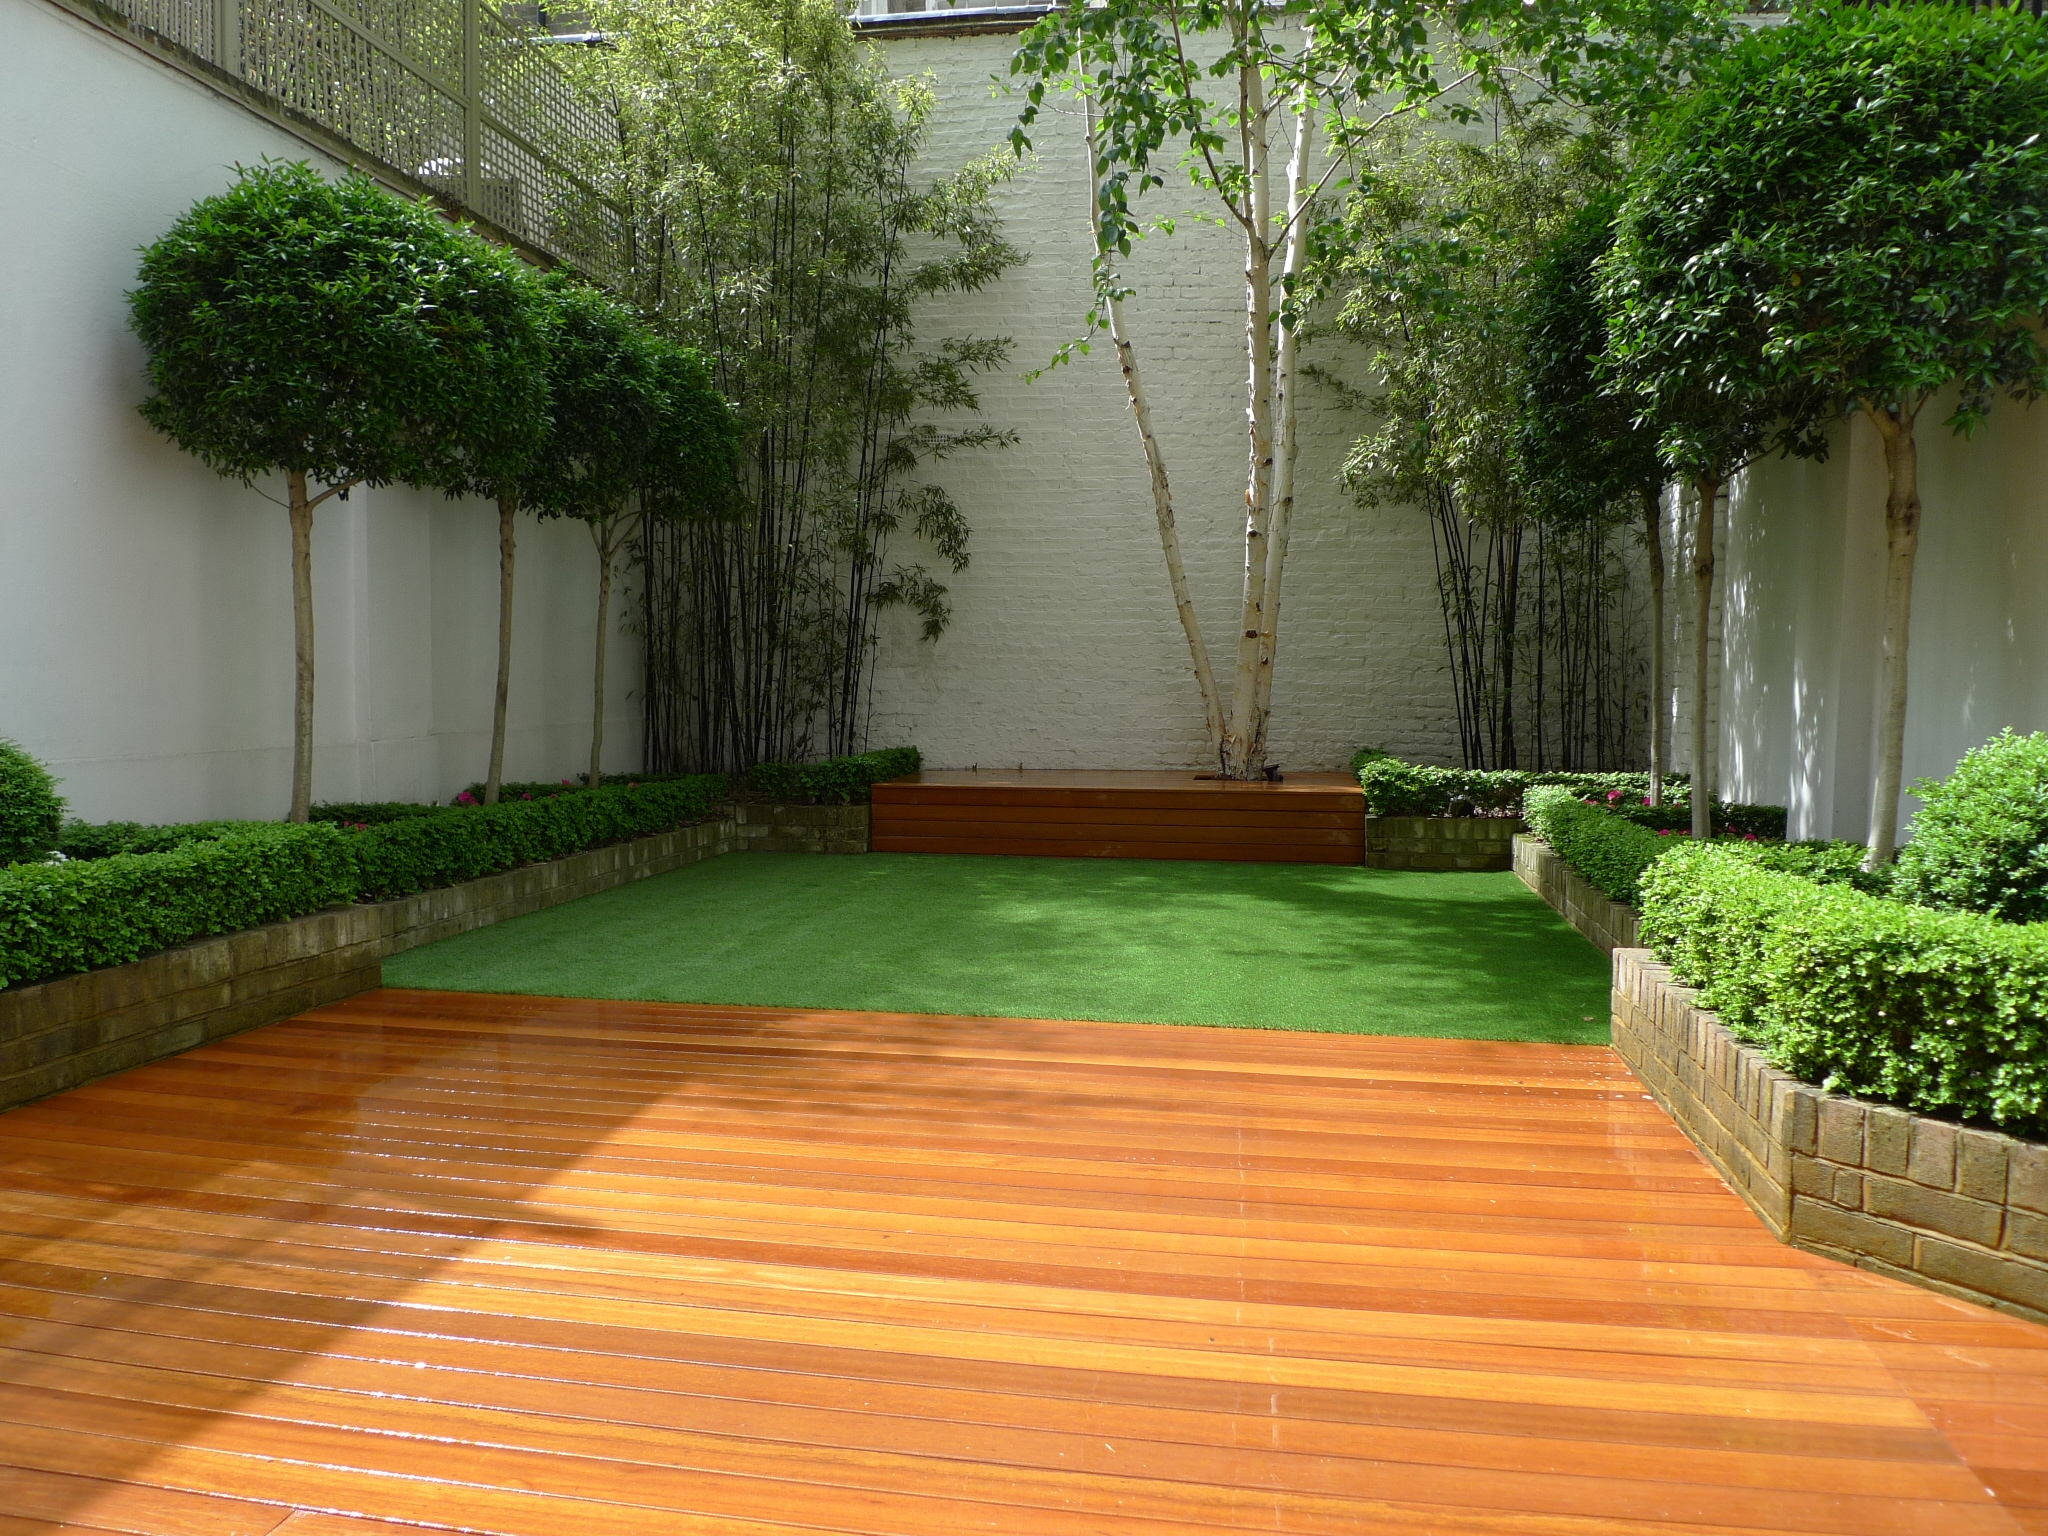 Chelsea garden design hardwood decking artificial grass for Garden design 2015